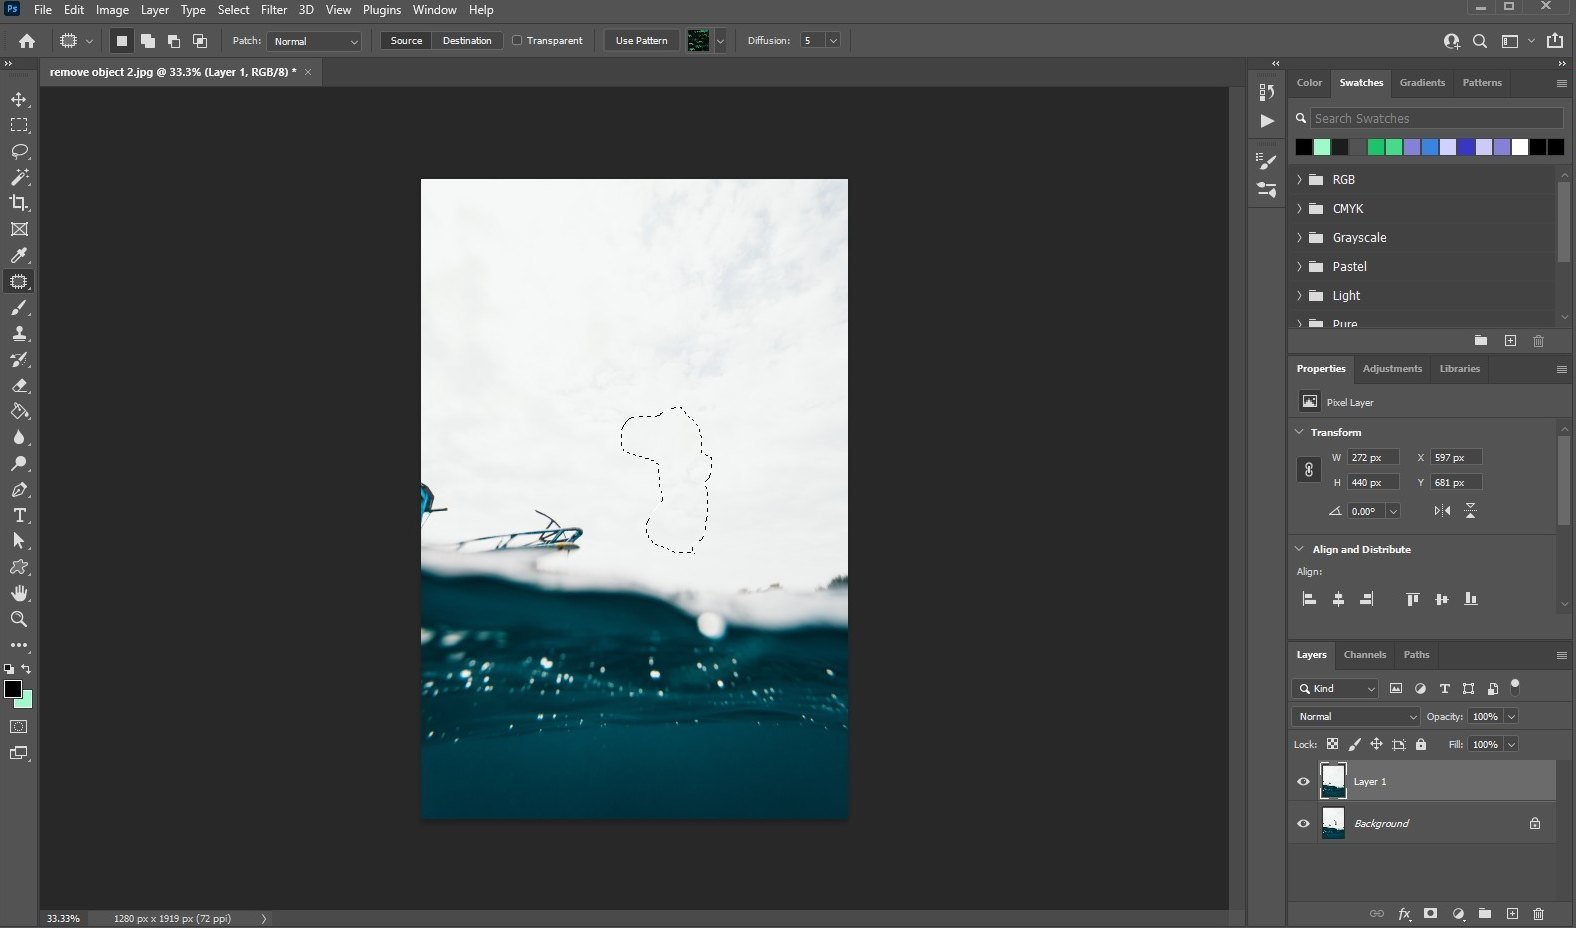 remove an object in photoshop - using patch tool - 3